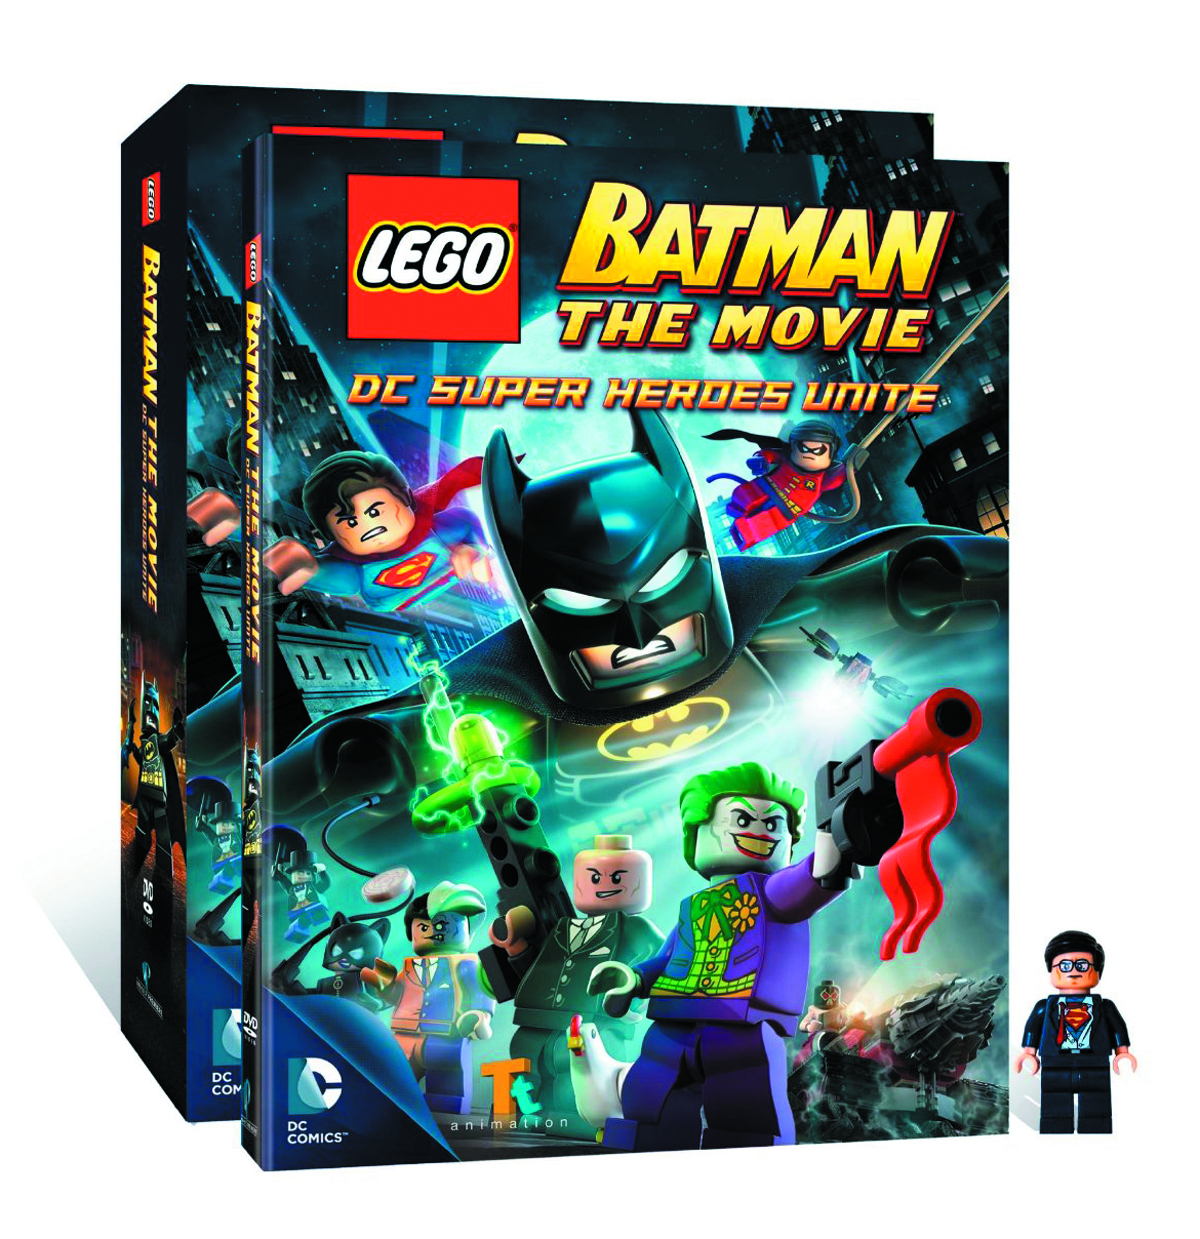 LEGO BATMAN THE MOVIE DVD + MINIFIG